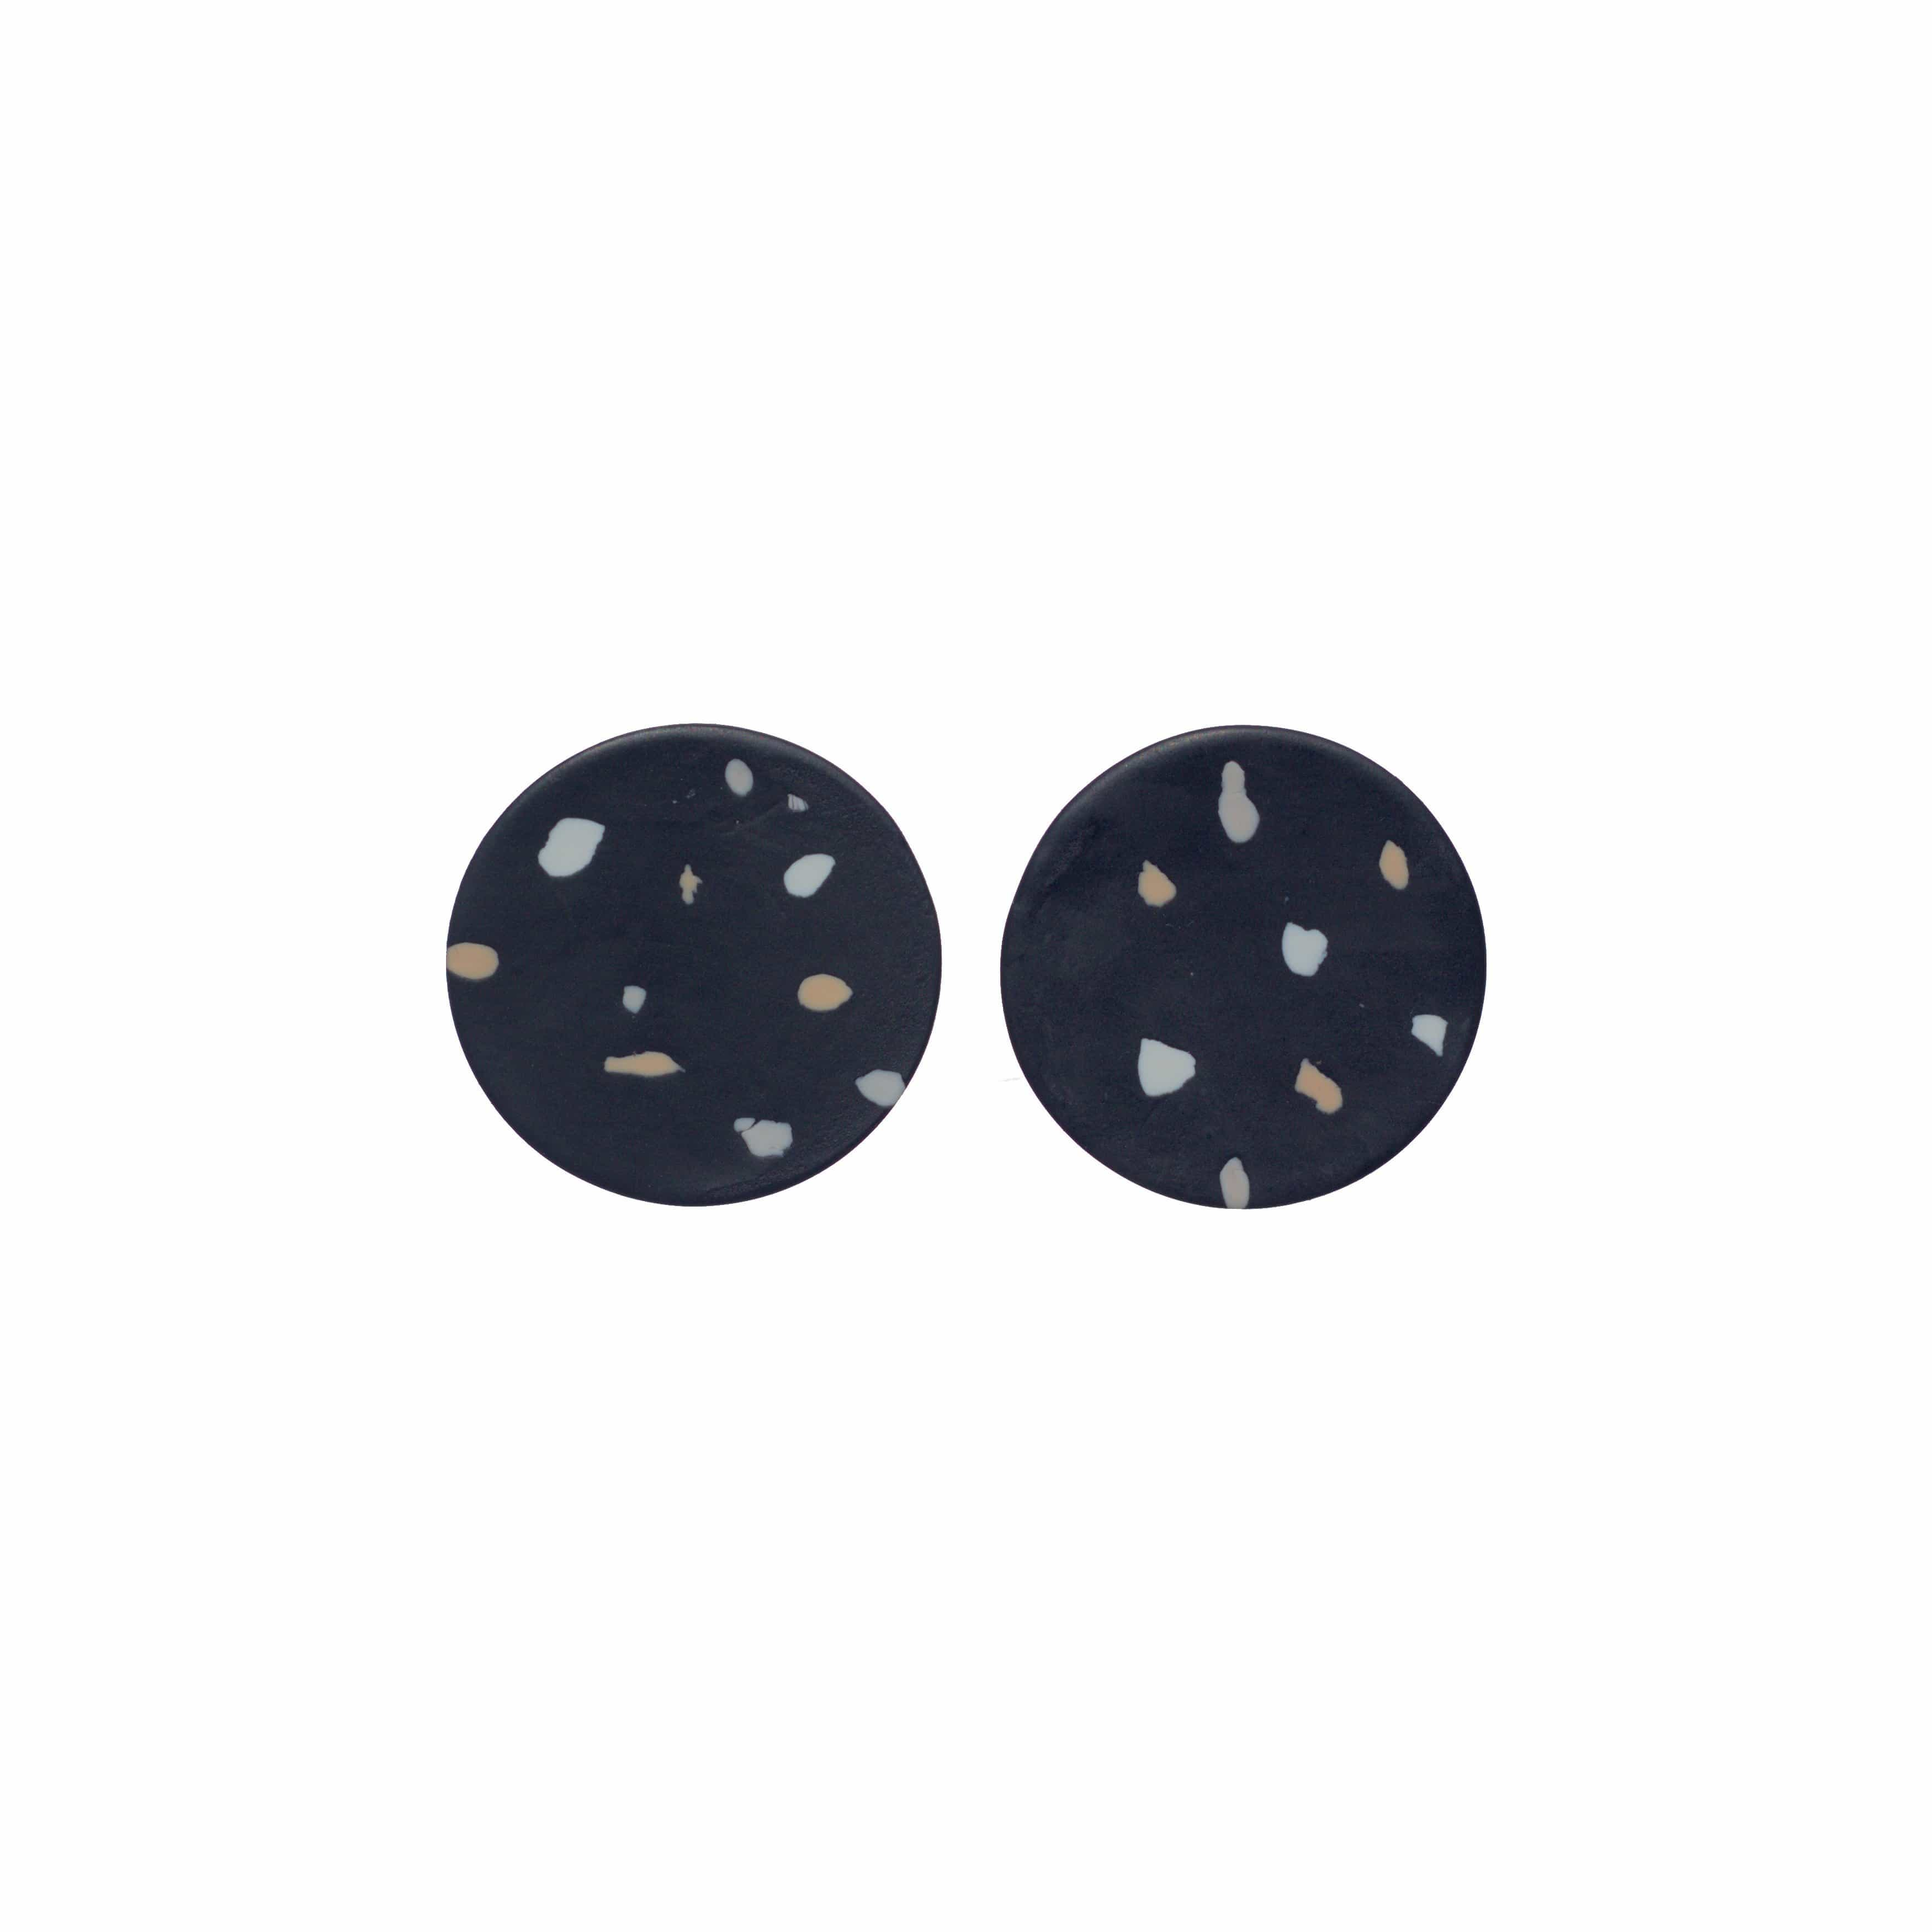 Black Dot Polymer Clay Earrings